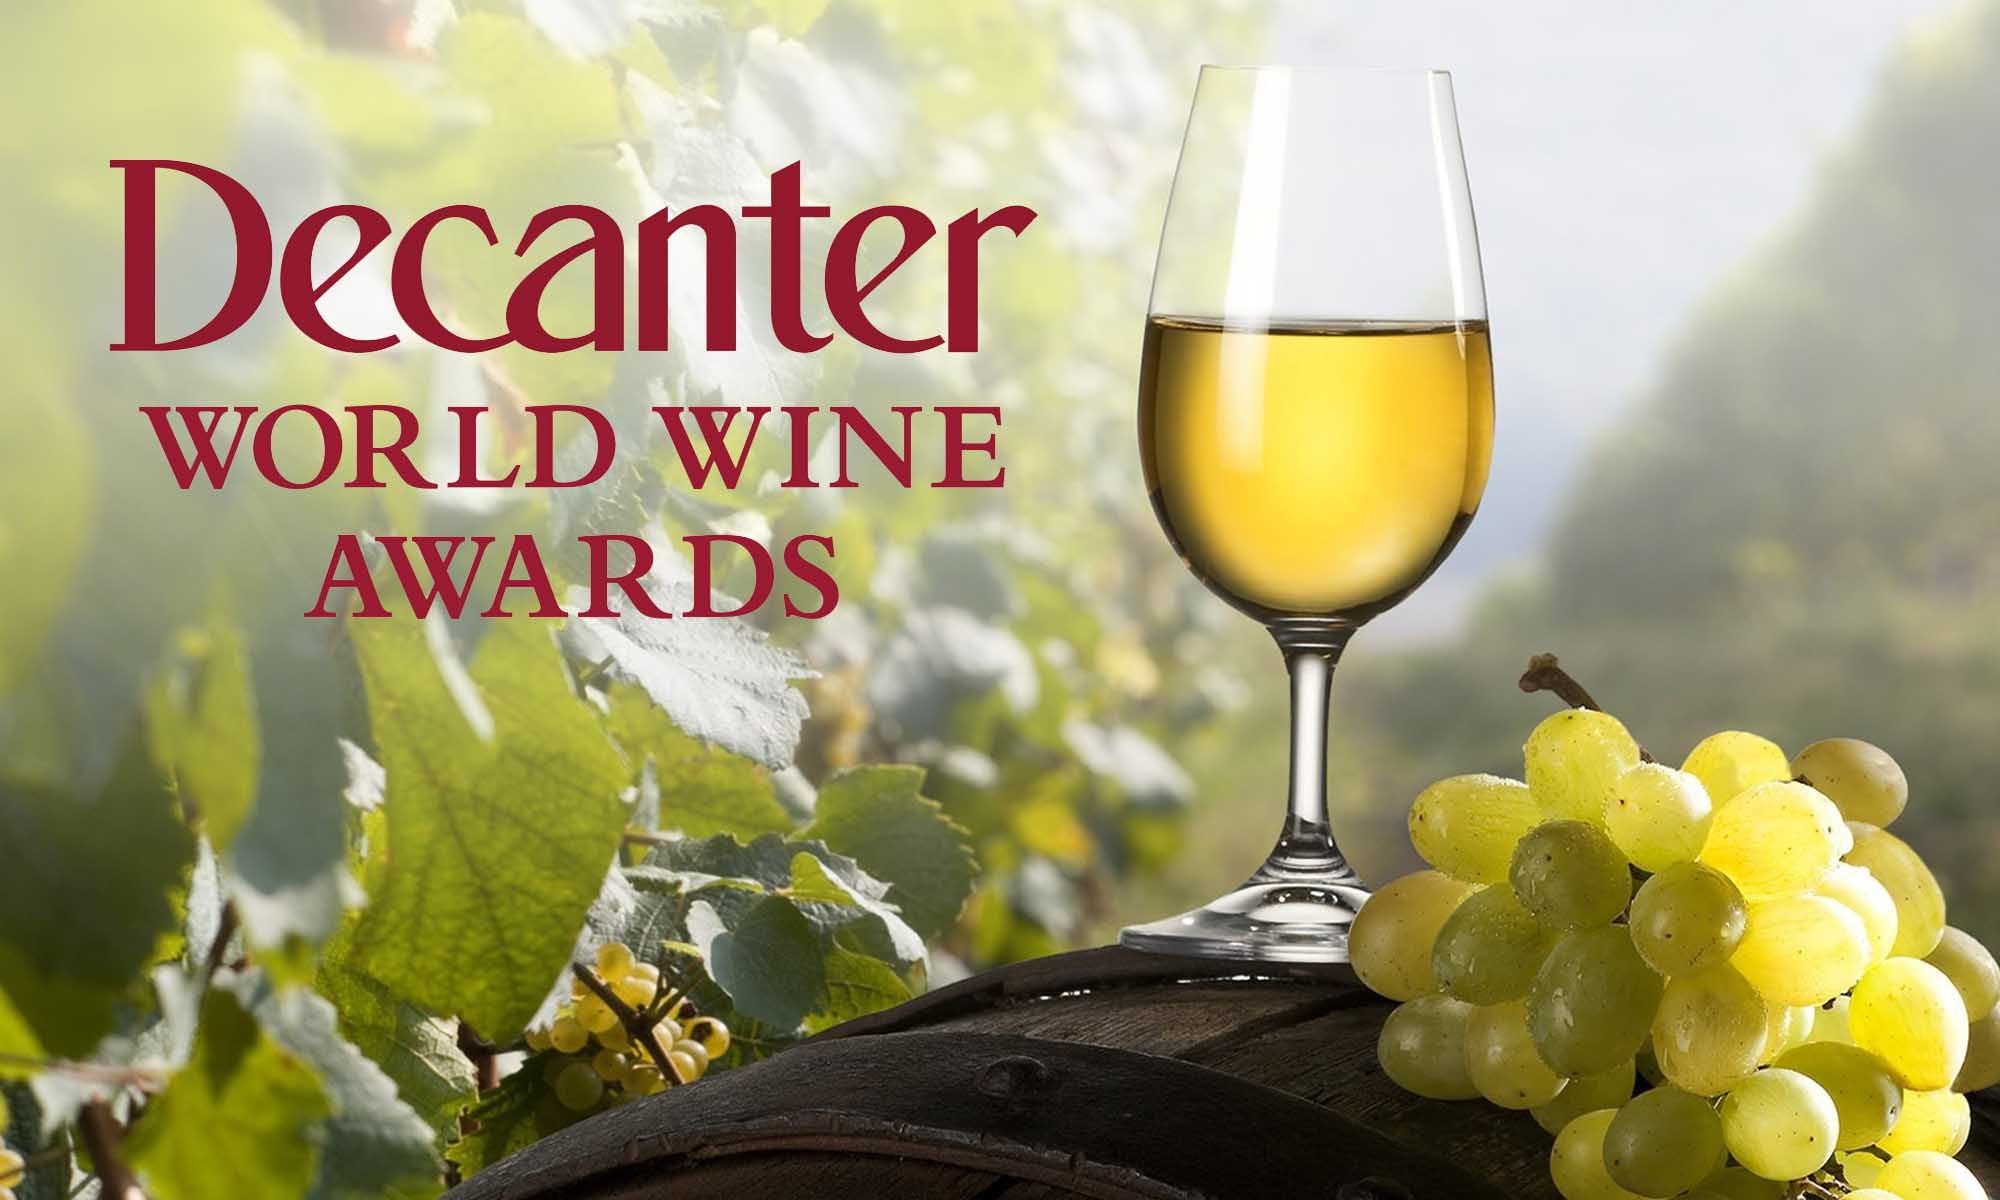 DOBLE MEDALLA DE BRONCE Y MEDALLA DE PLATA EN EL DECANTER WINE AWARDS 2018